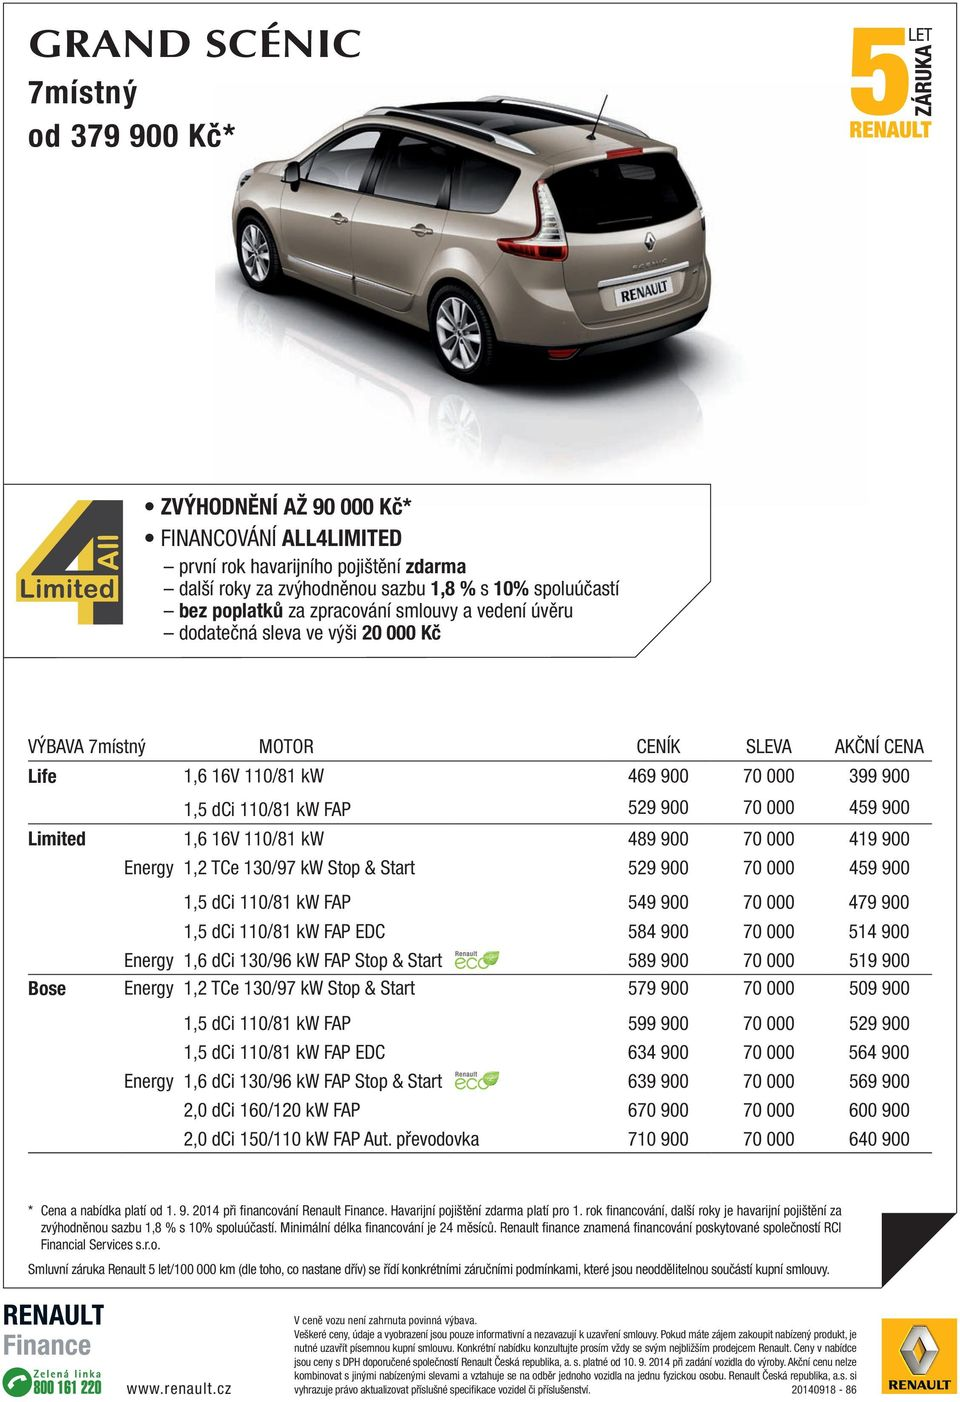 900 Limited 1,6 16V 110/81 kw 489 900 70 000 419 900 Energy 1,2 TCe 130/97 kw Stop & Start 529 900 70 000 459 900 1,5 dci 110/81 kw FAP 549 900 70 000 479 900 1,5 dci 110/81 kw FAP EDC 584 900 70 000